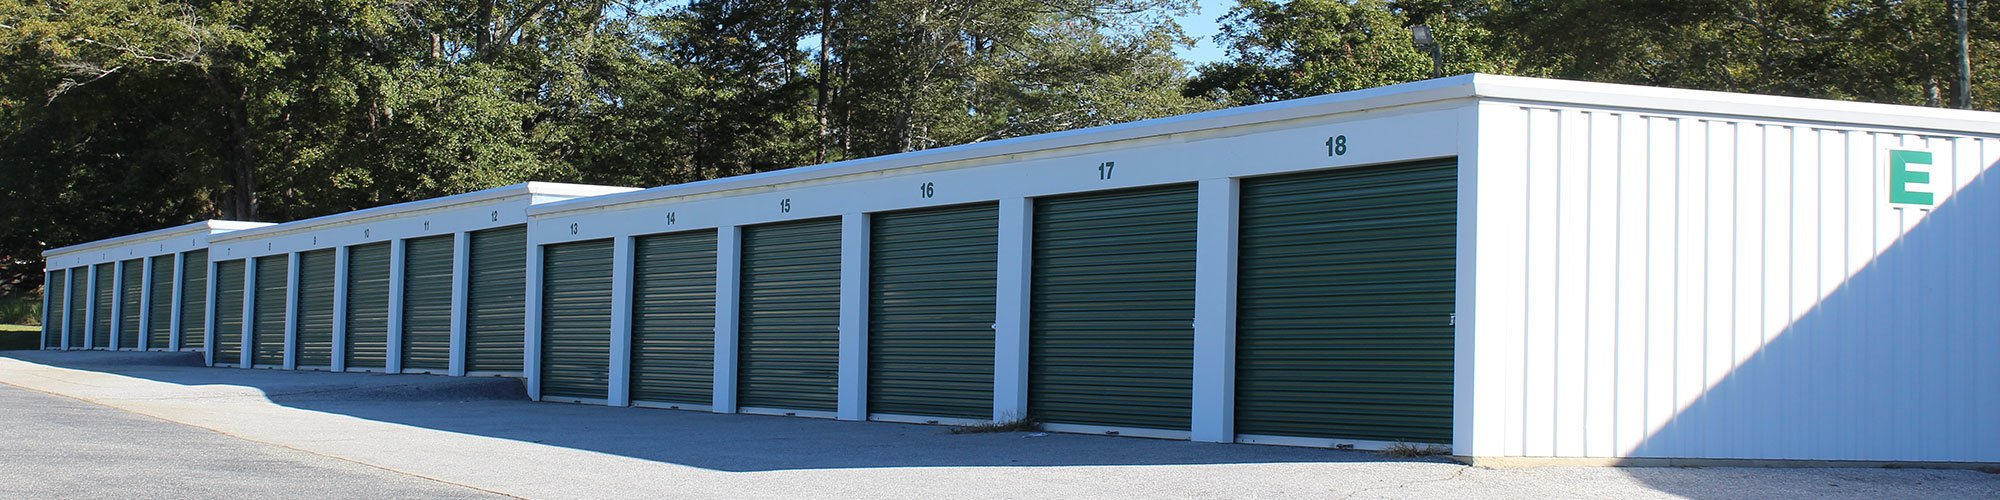 steel tn shed sheds rent knoxville outdoor garages for garage to midwest storage carports own metal